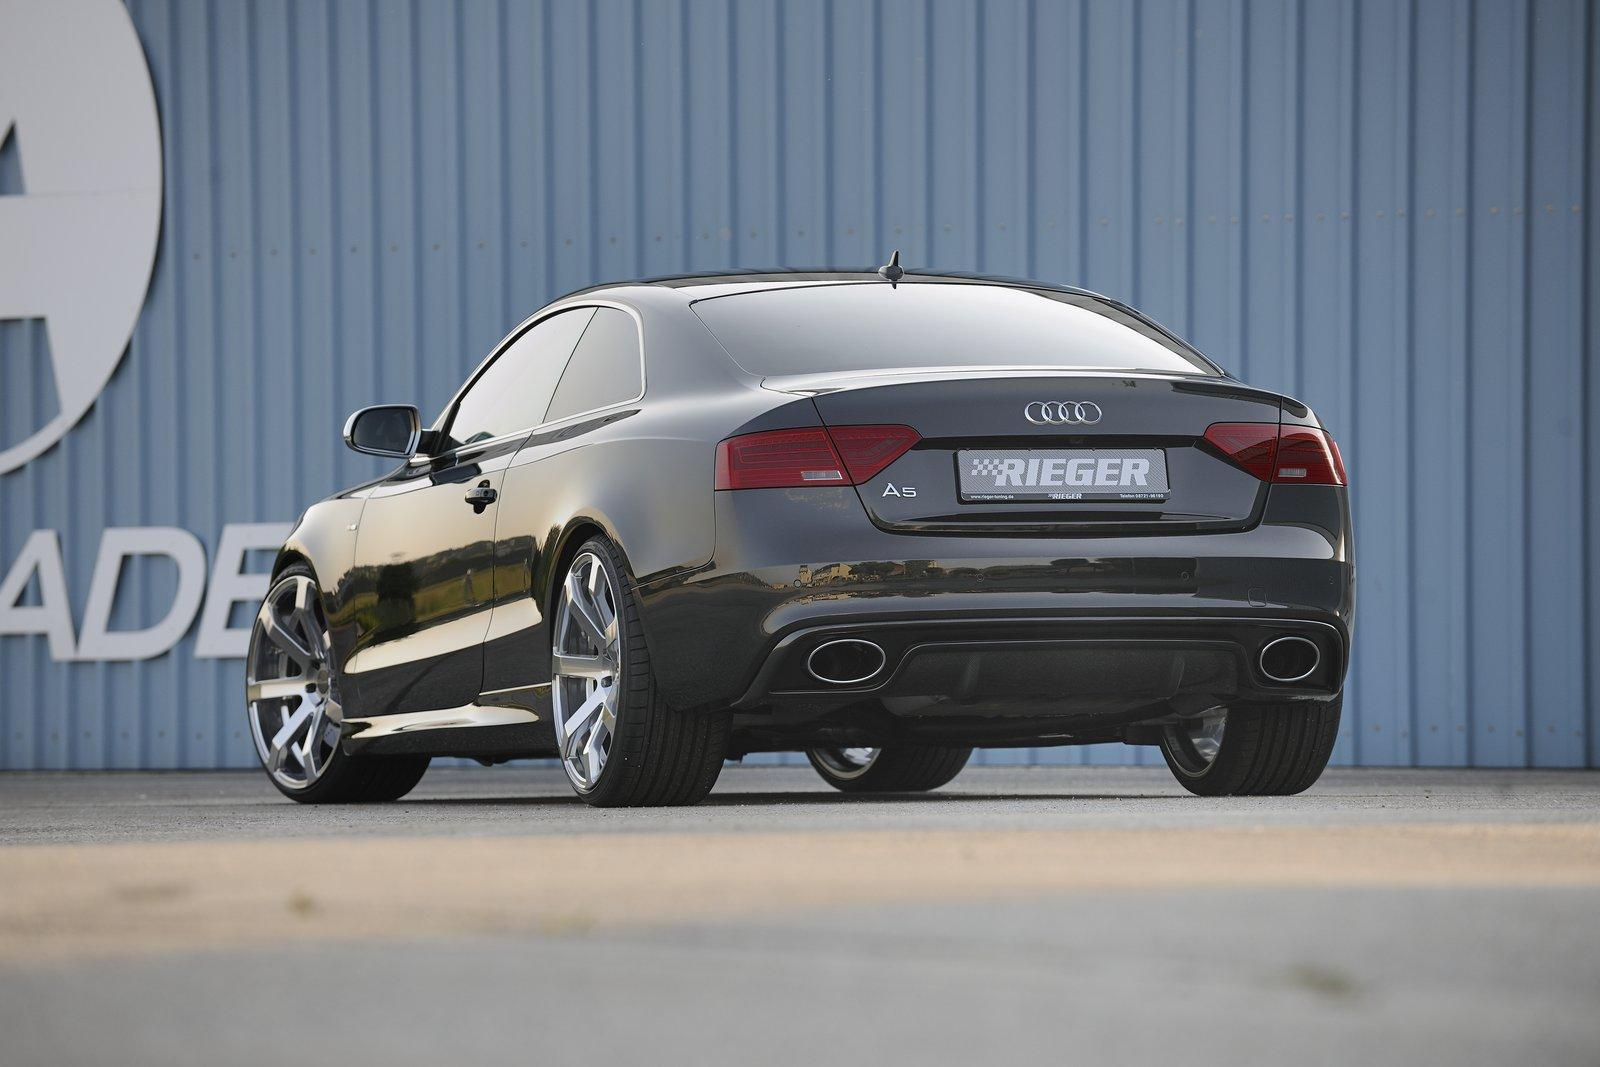 2012-Audi-A5-Facelift-Rieger-Tuning-6.jpg?imgmax=1800